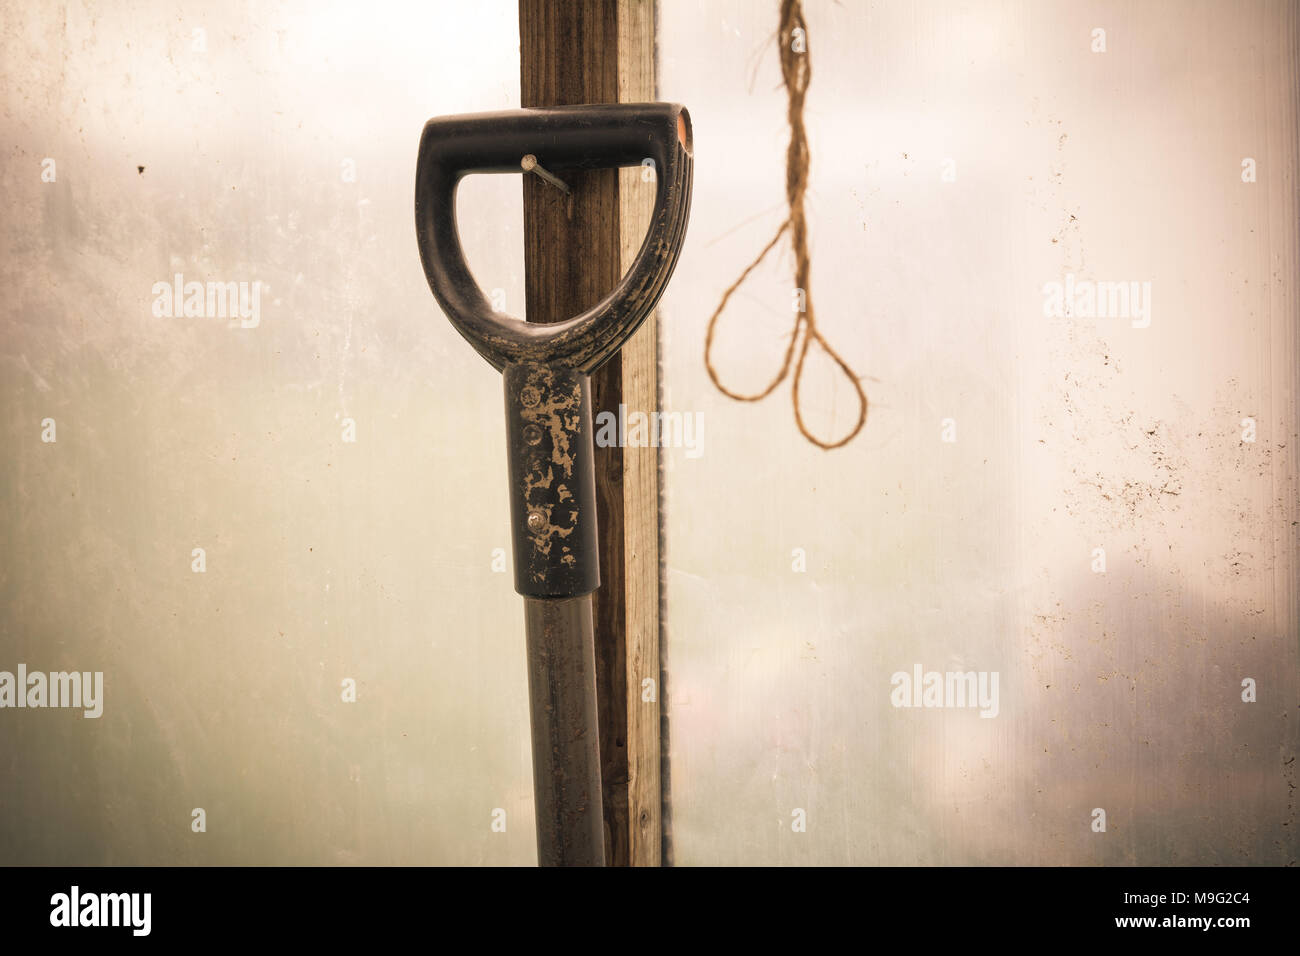 Shovel hanging on a nail in old greenhouse. Farmer work concept. Vintage style. - Stock Image